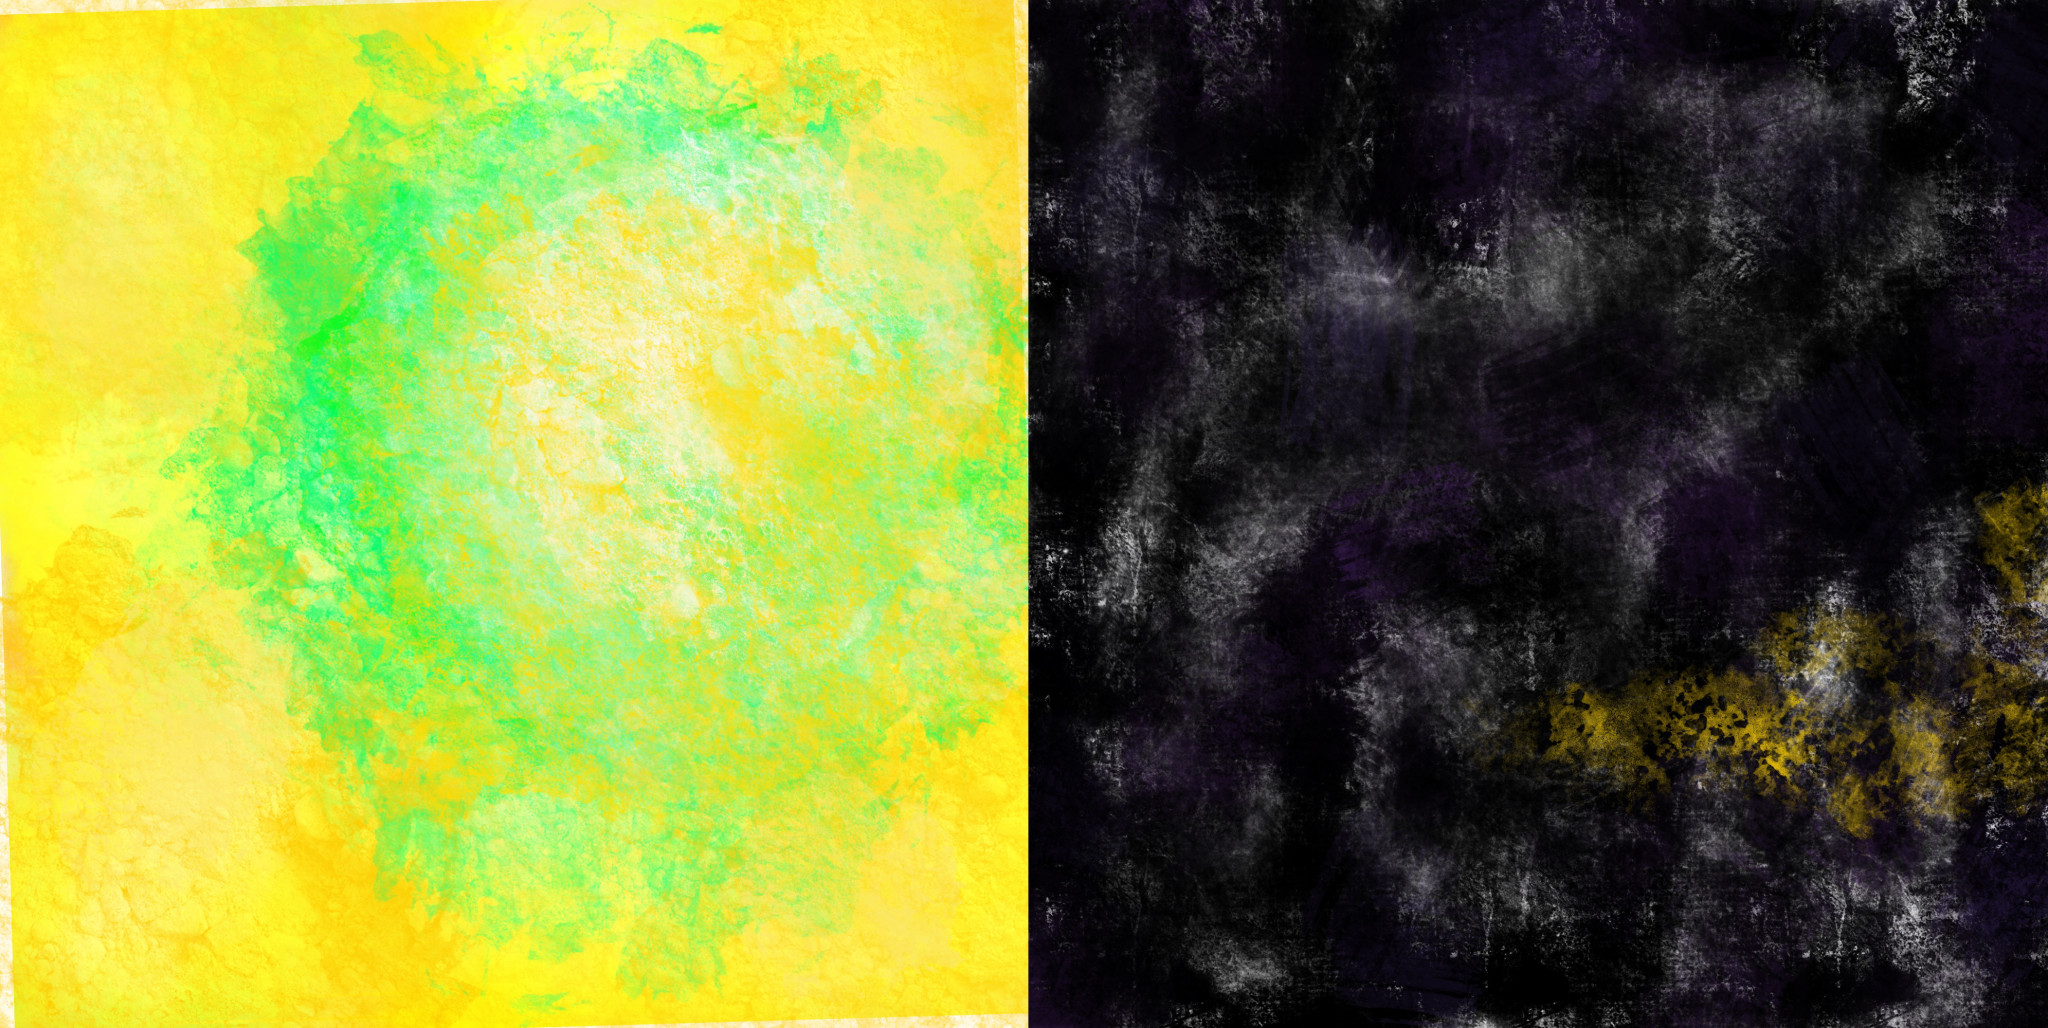 Abstract yellow daubs of color overlay the field around a thick green circle emerging right of center; a blurry yellow triangle peeks out from a fog of black and purple